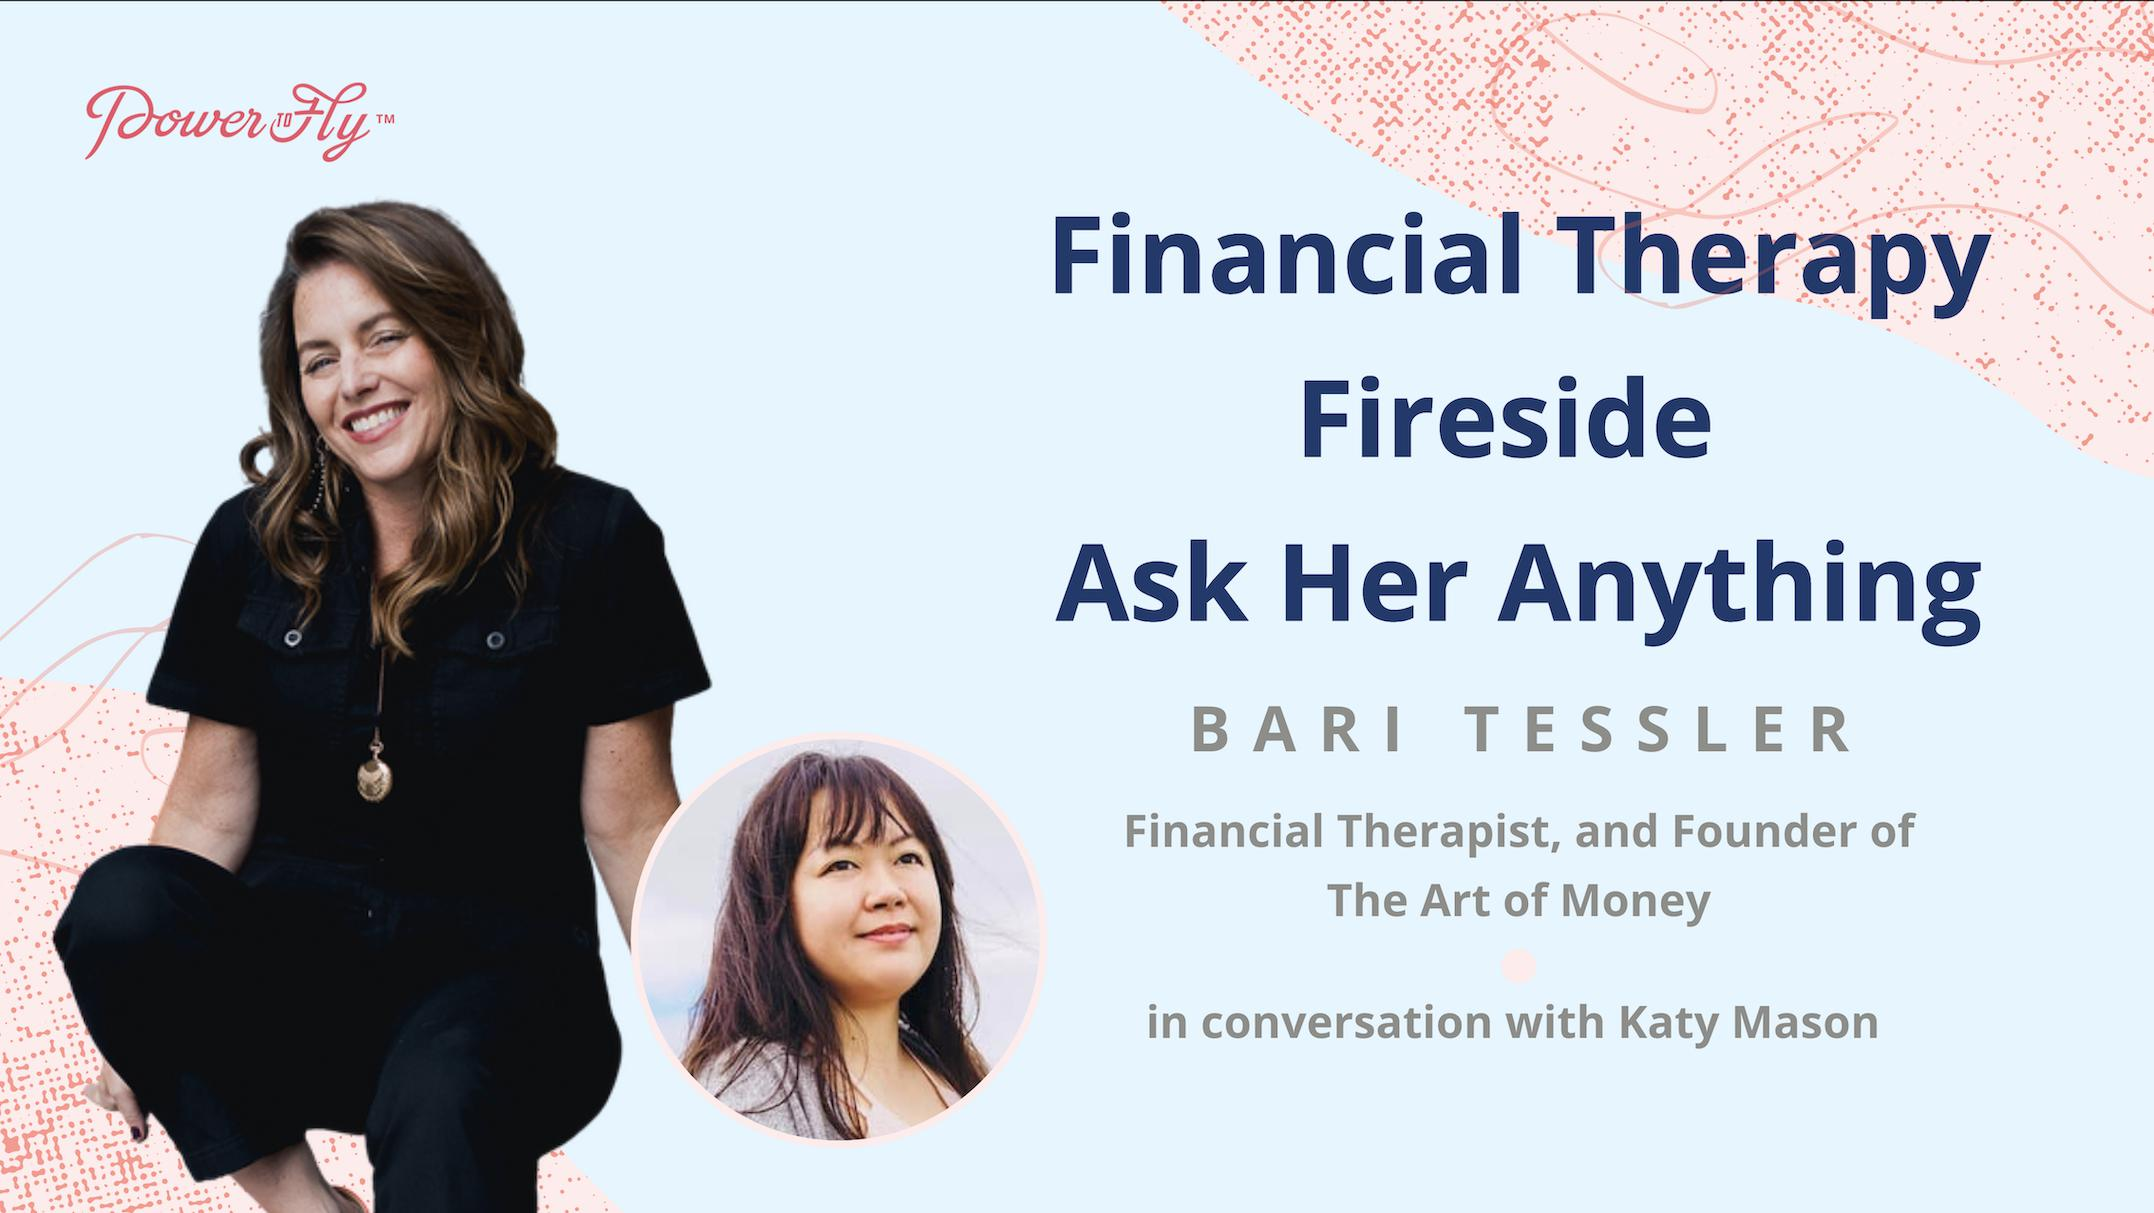 Financial Therapy Fireside With Bari Tessler